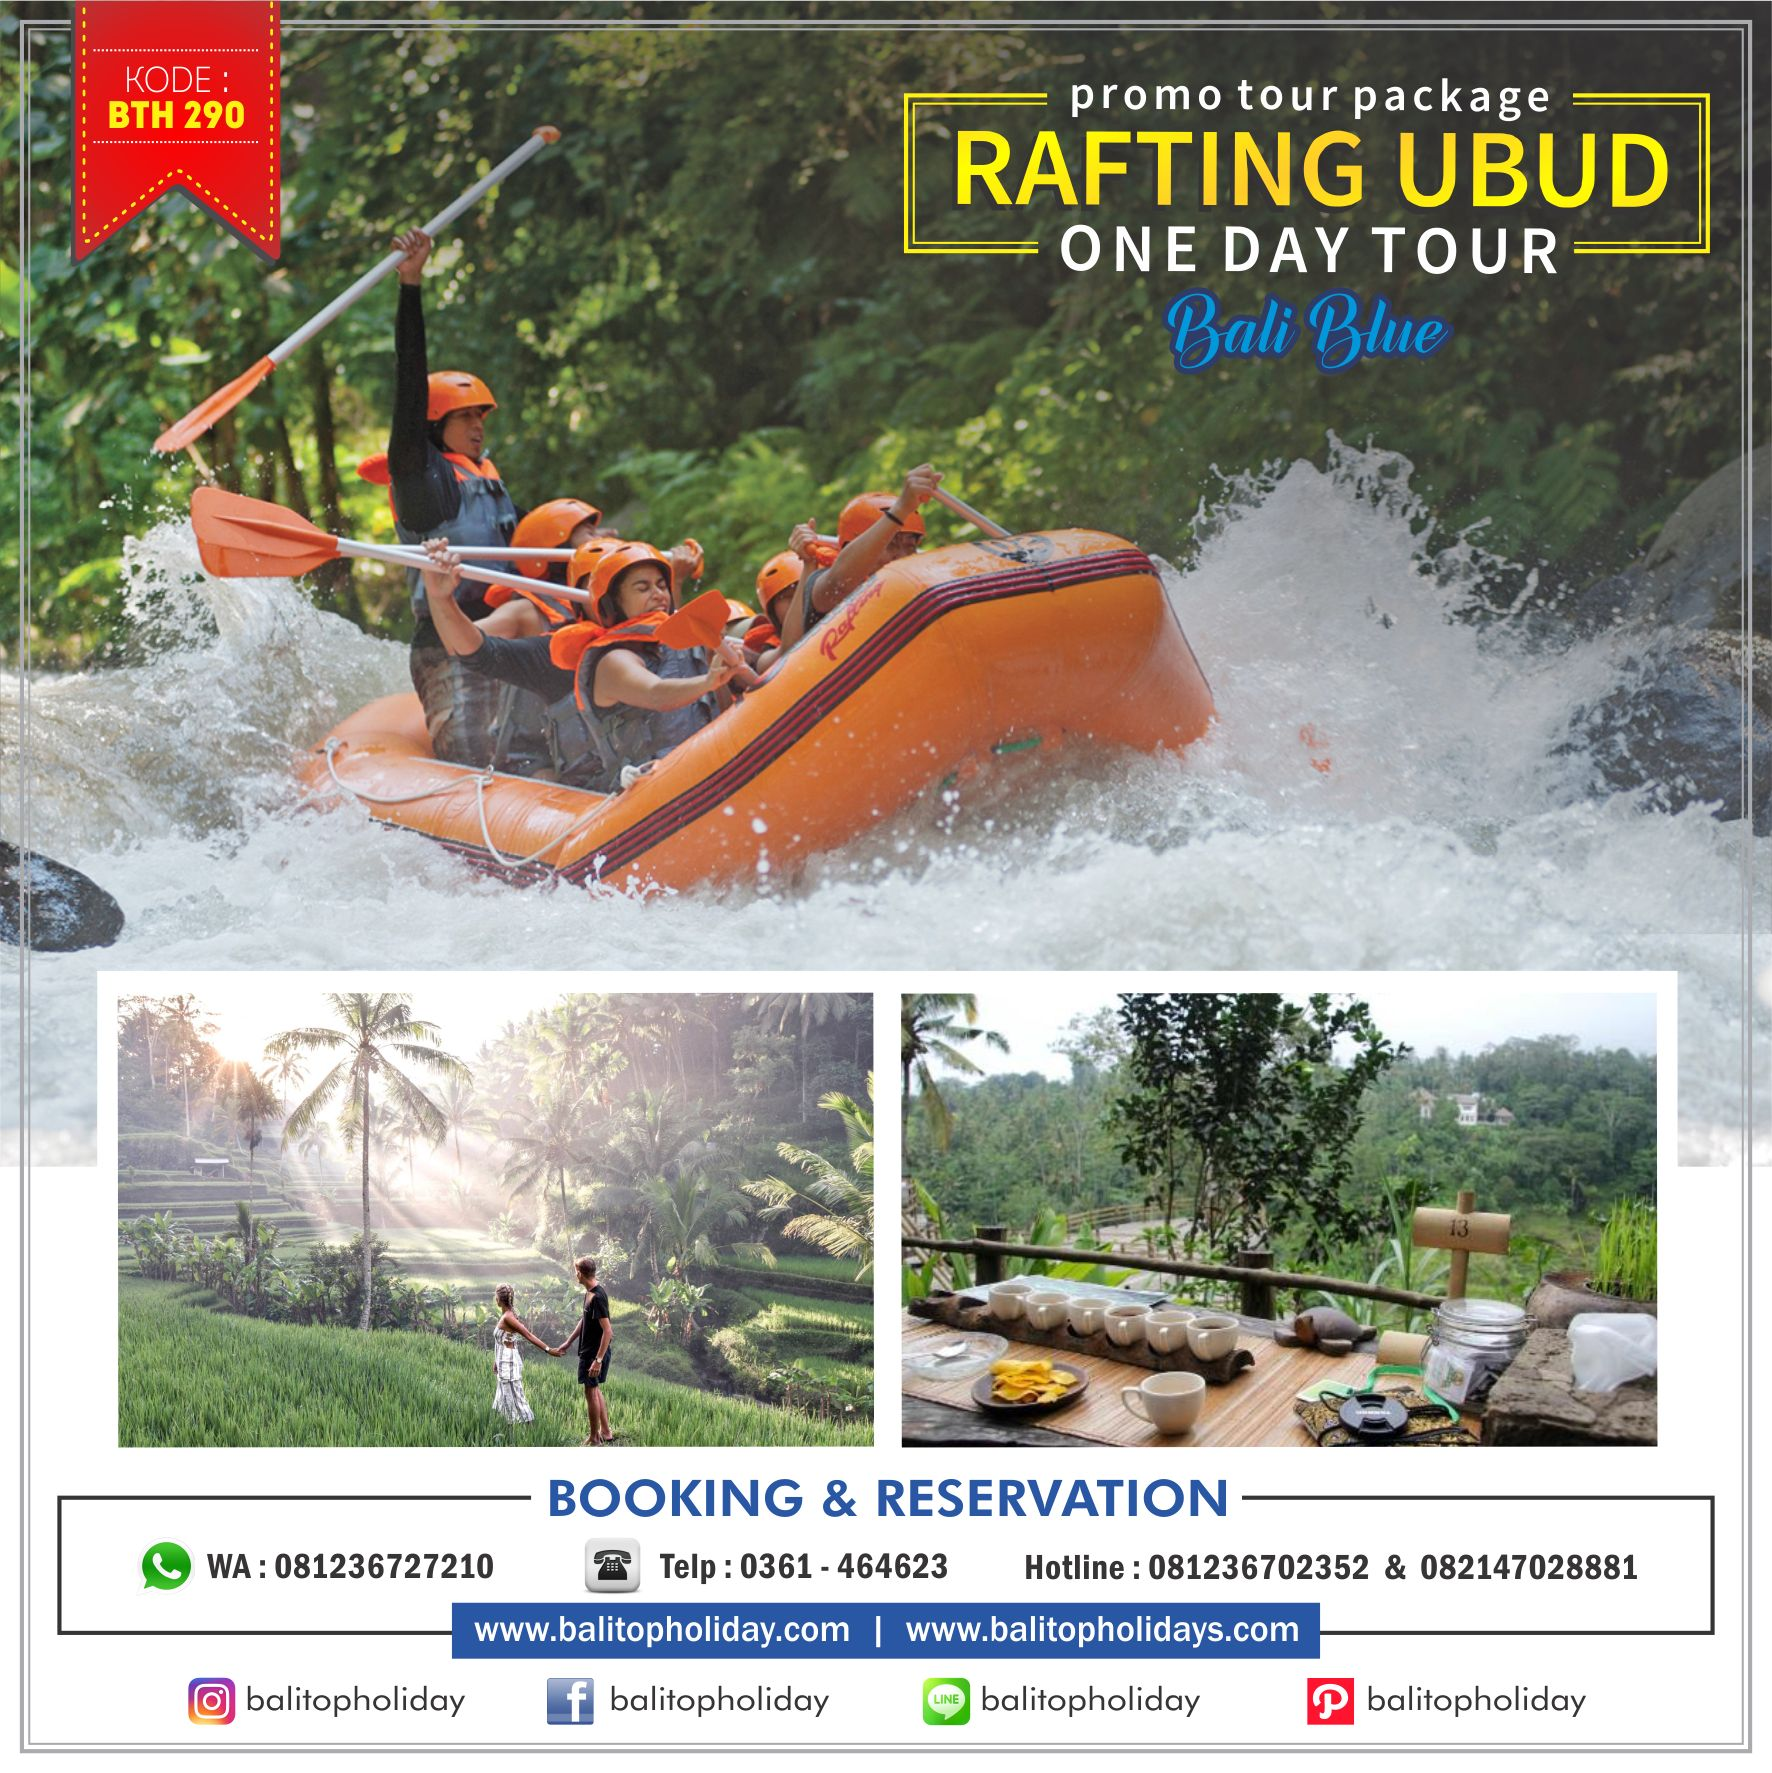 rafting ubud One Day Tour